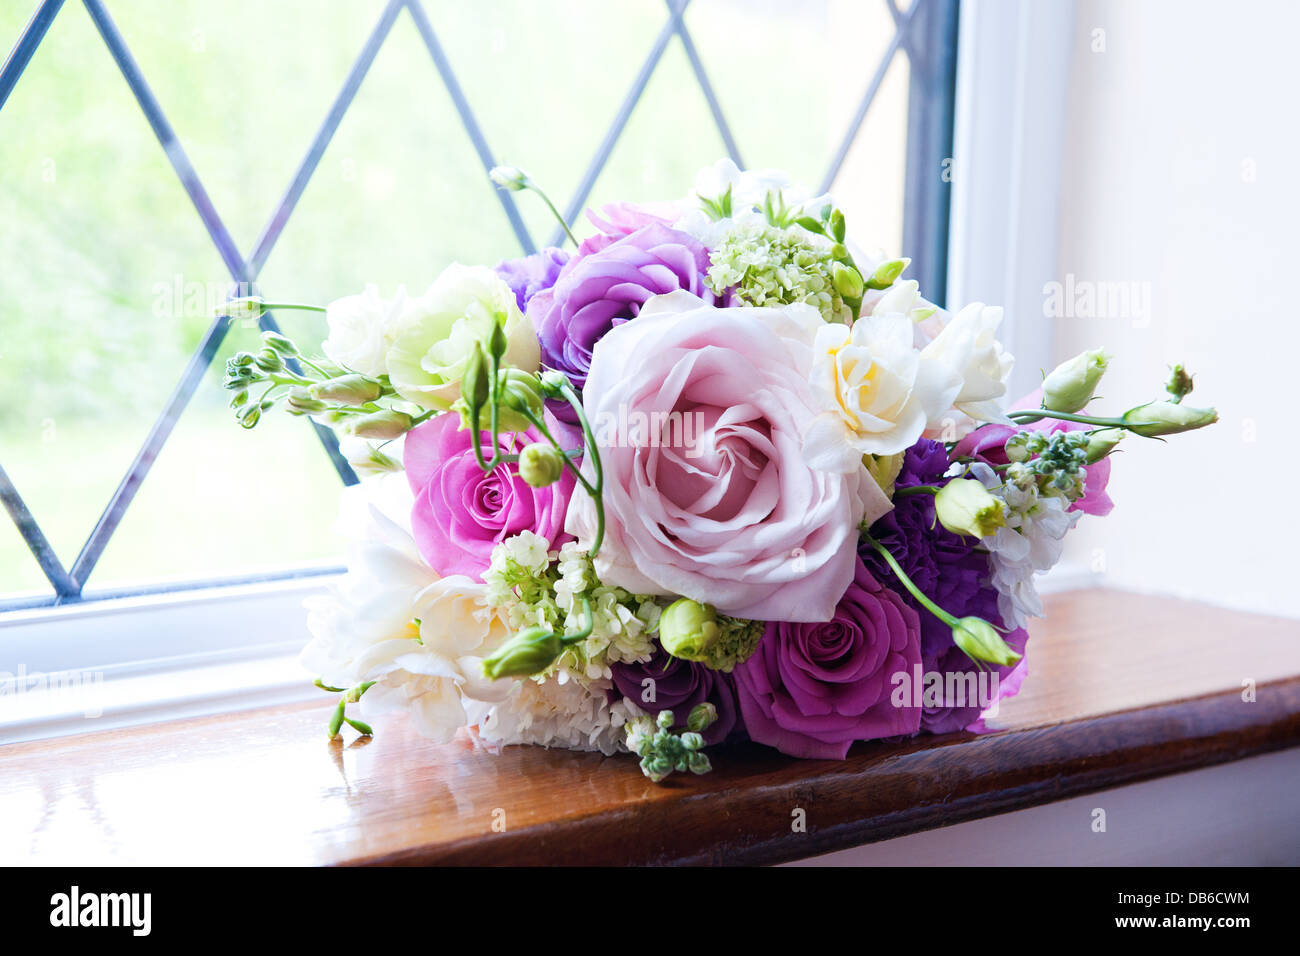 Vibrant Purple Pink White And Pastel Pink Rose Wedding Flower